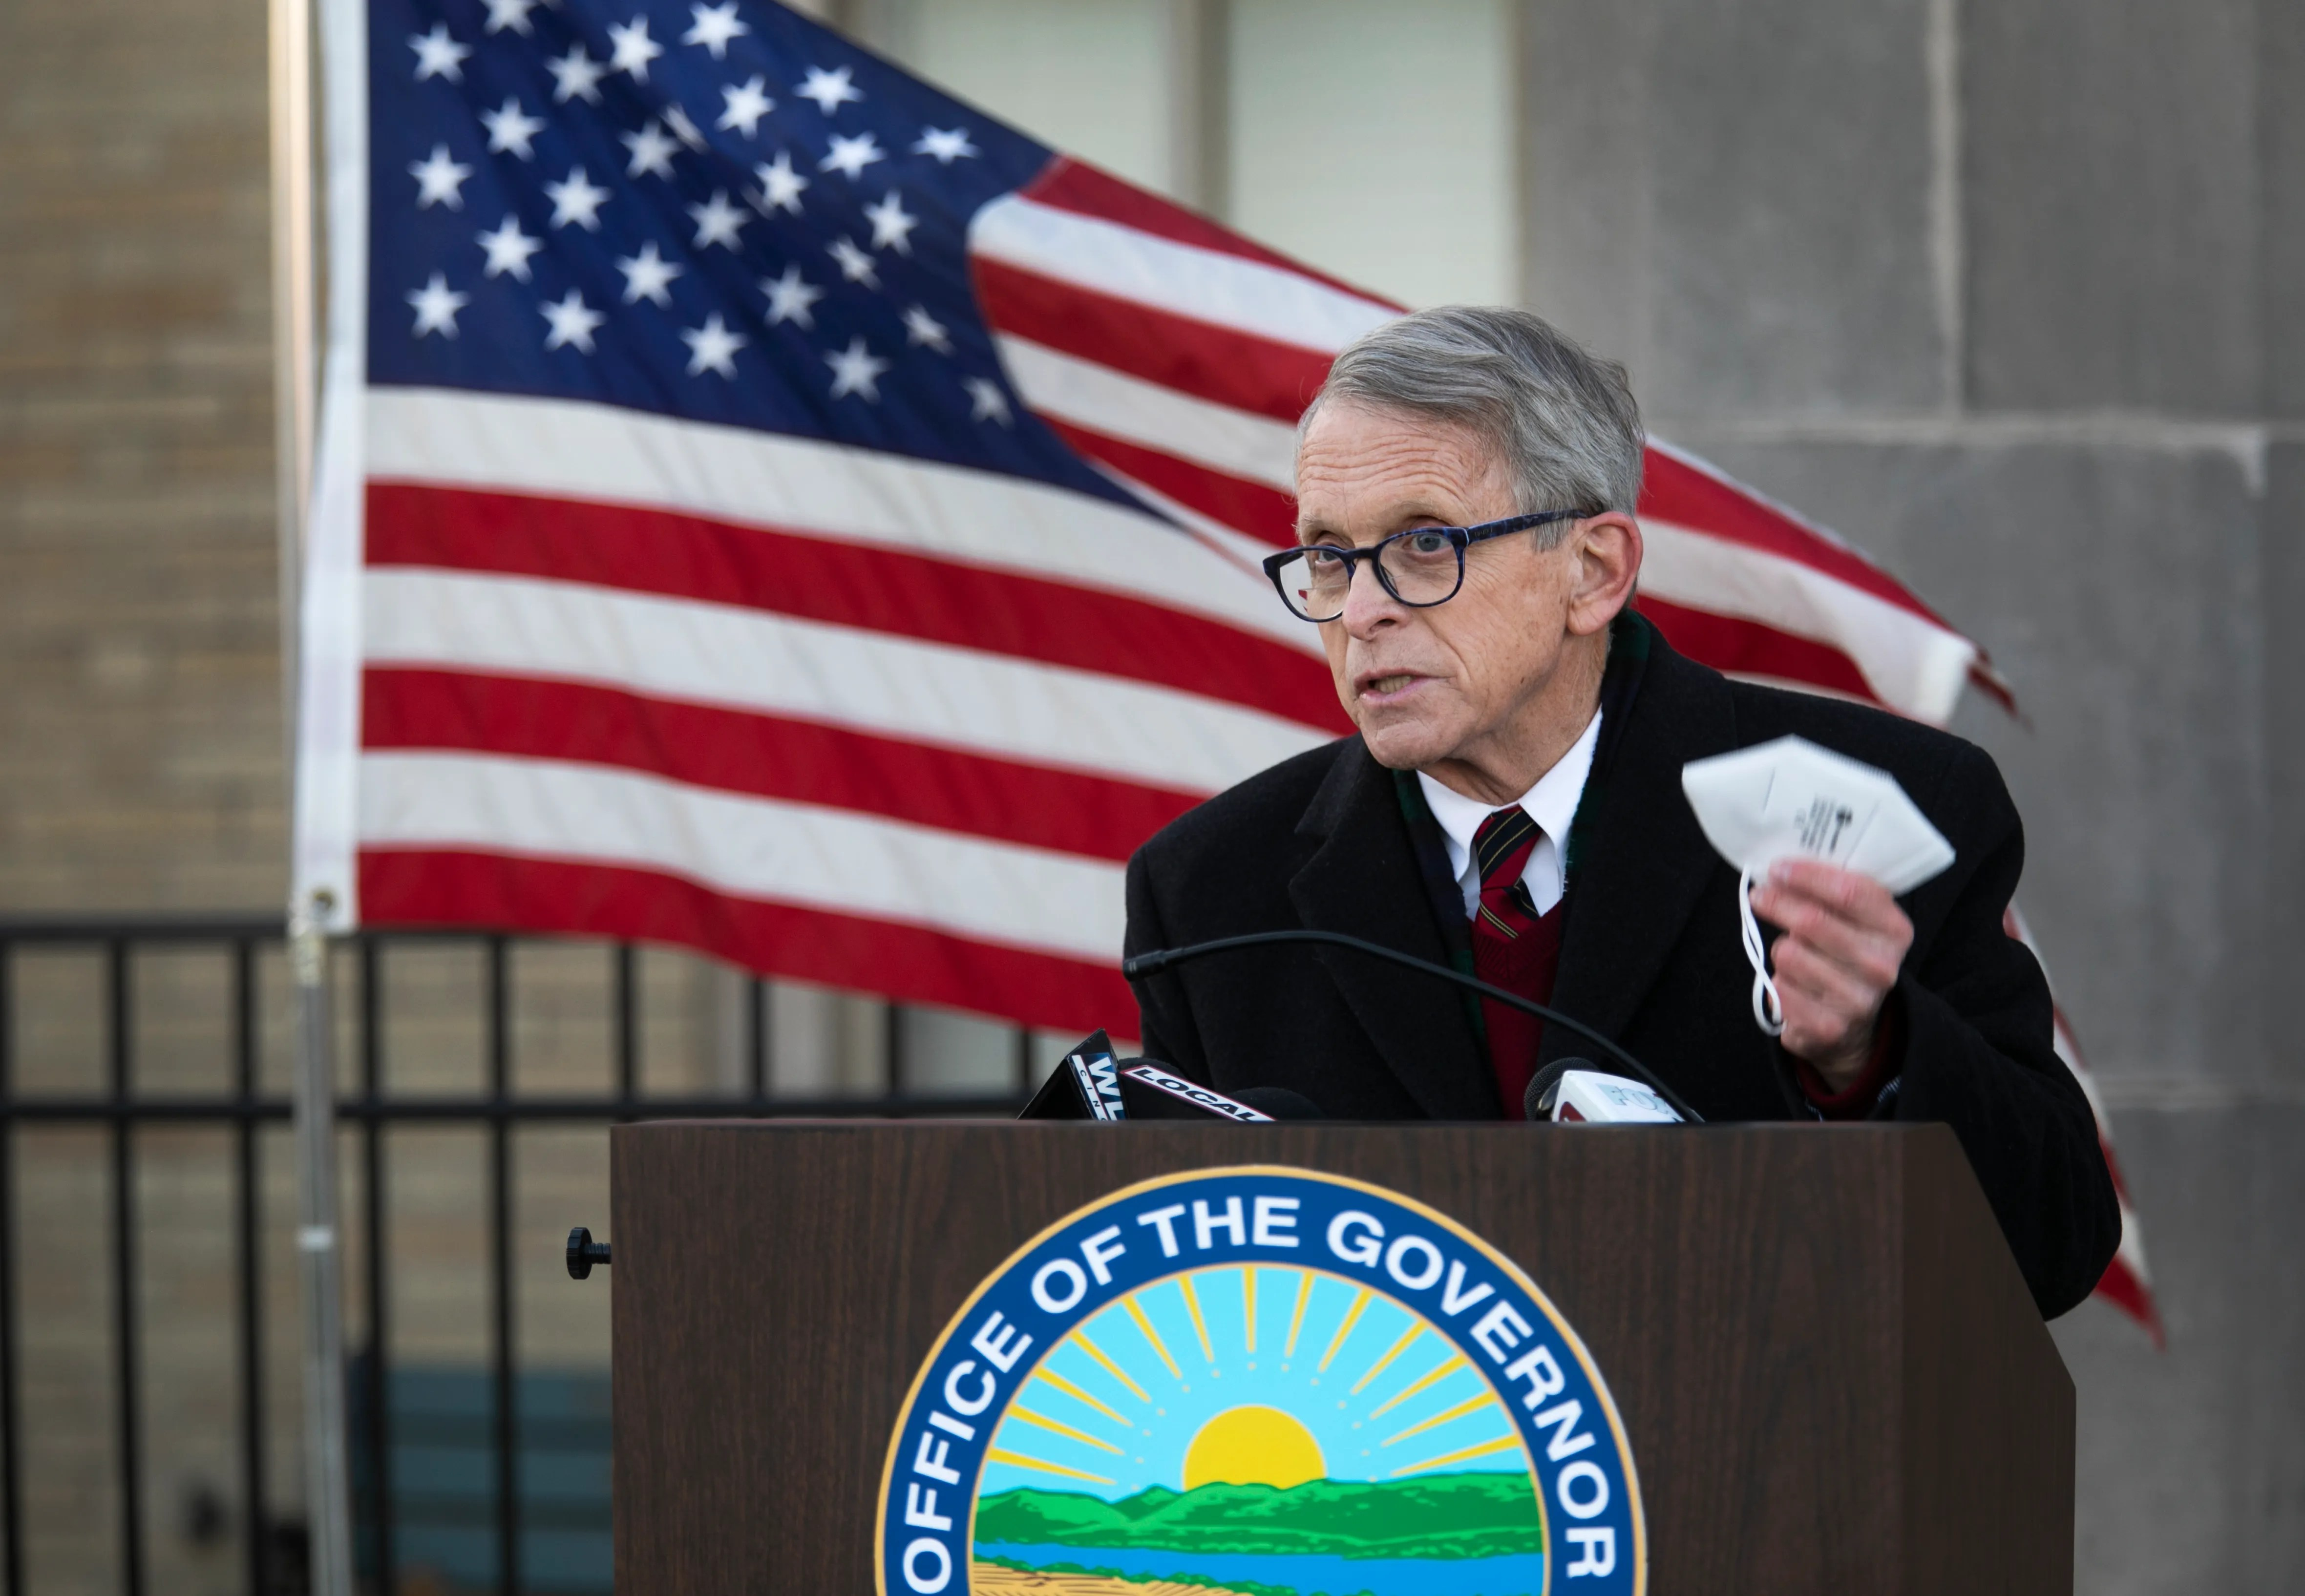 Gov. Mike DeWine holds his masks up during a press conference at Lunken Airport, Wednesday, Nov. 18, 2020. DeWine traveled across the state to enforce the curfew and the importance of masks and social distancing during the coronavirus pandemic.